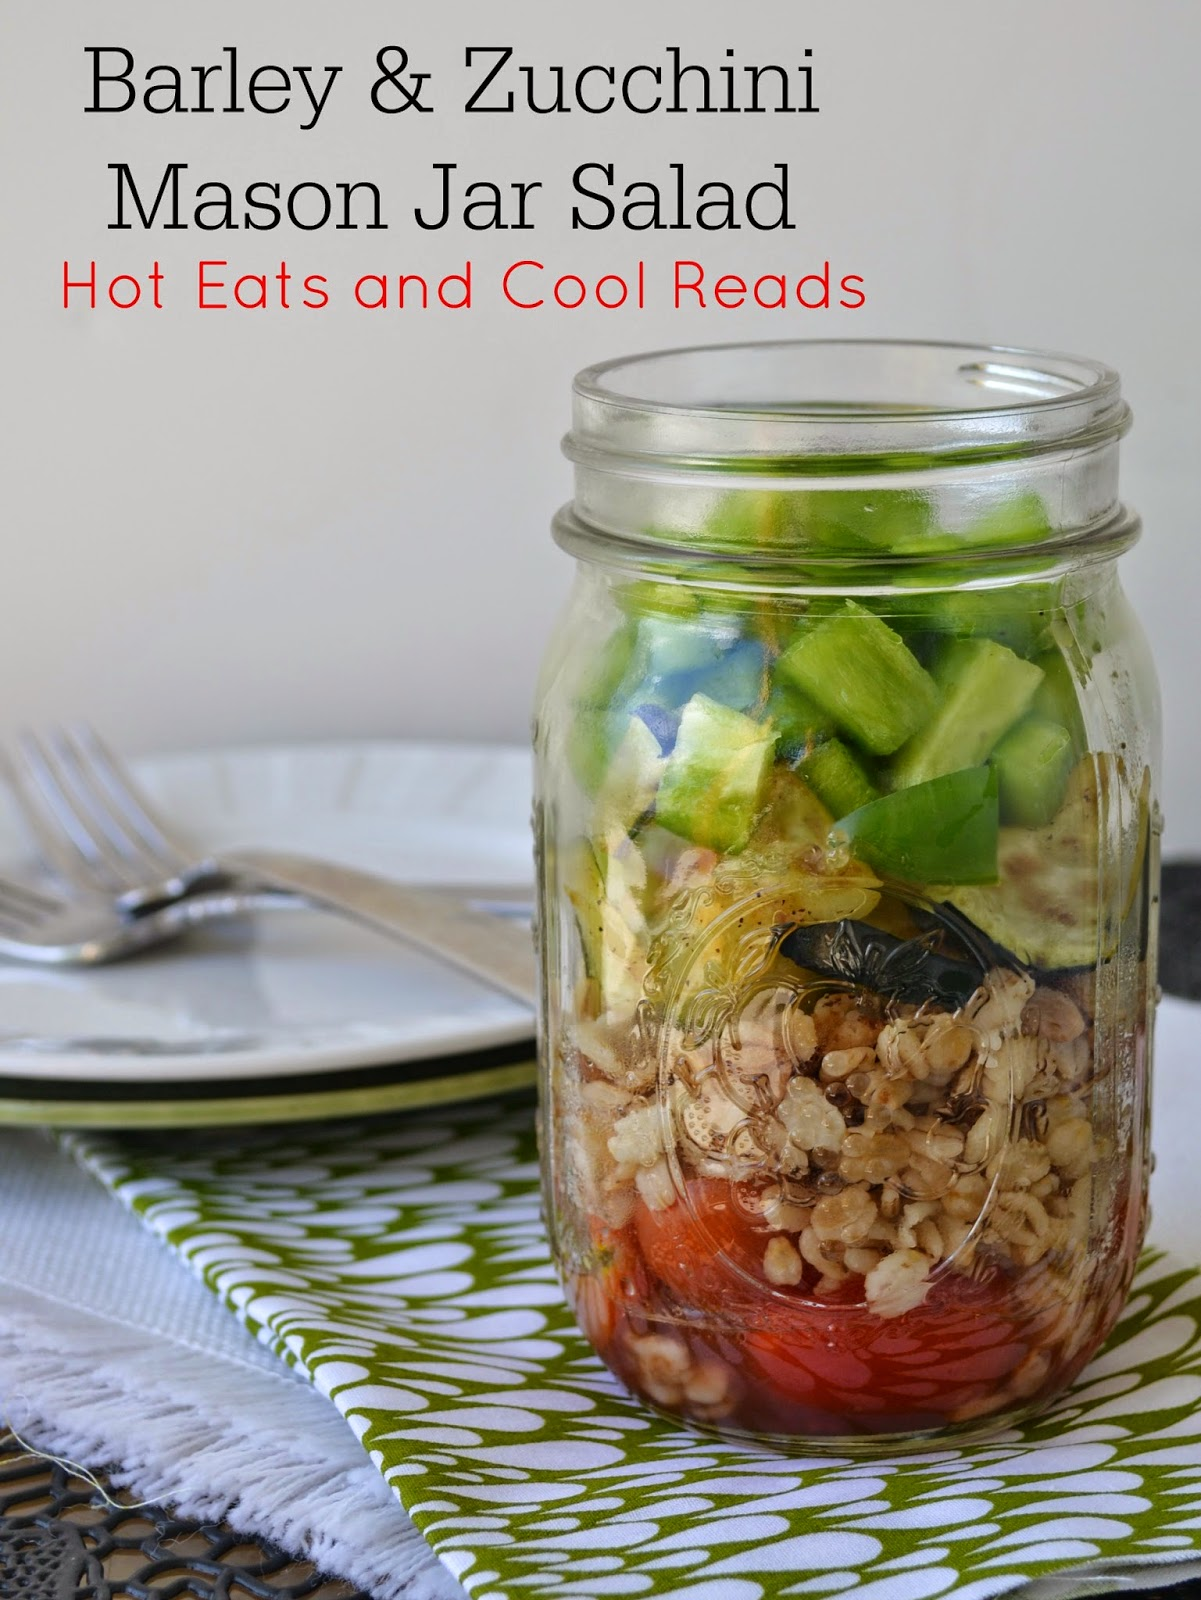 Need a new lunch idea? This jar salad is not only delicious, but healthy too! Packed full of veggies including bell pepper, zucchini and tomatoes! Barley and Zucchini Mason Jar Salad Recipe from Hot Eats and Cool Reads